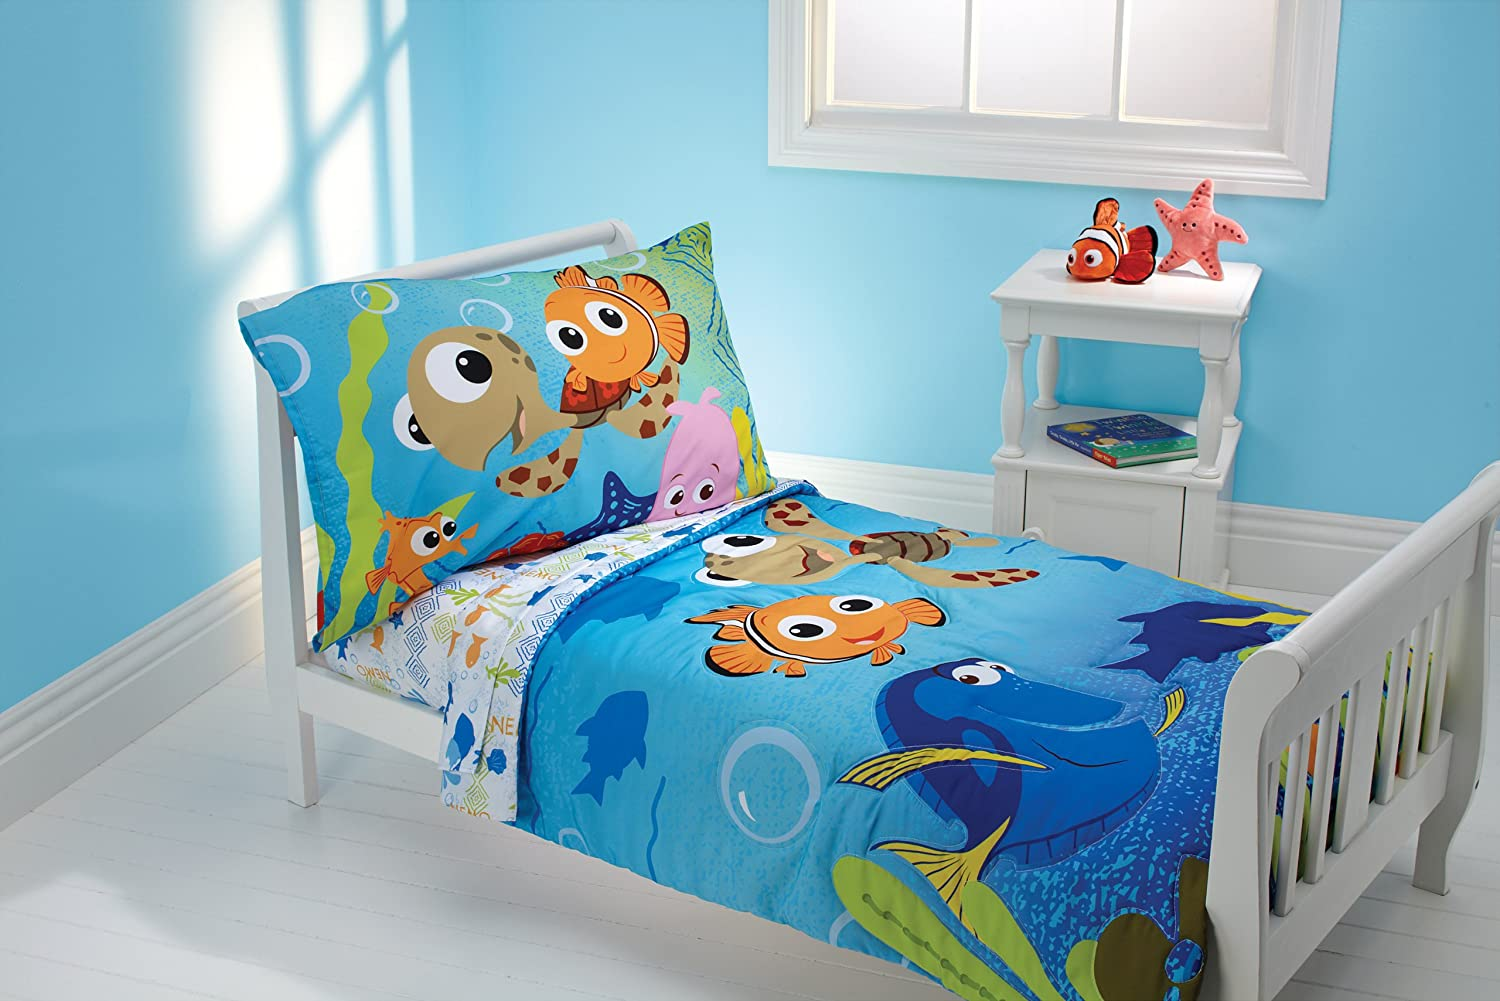 Delicieux Amazon.com : Disney 4 Piece Toddler Bedding Set, Nemo And Friends : Baby